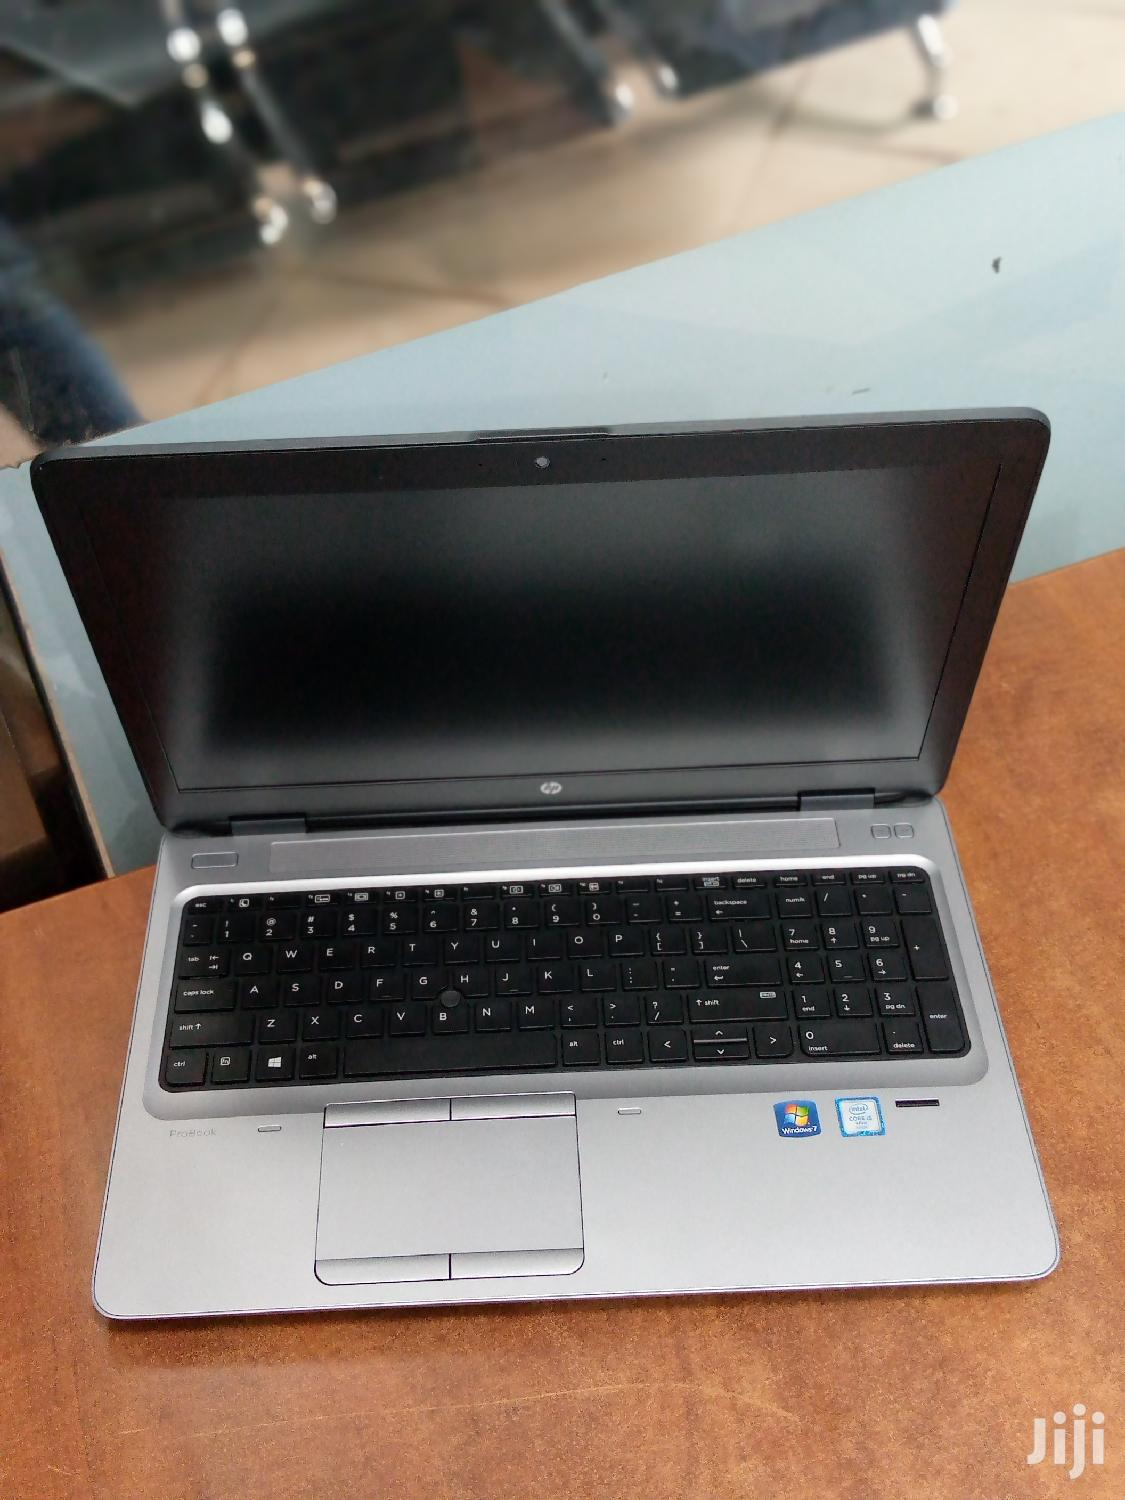 New Laptop HP 650 G2 8GB Intel Core I5 HDD 500GB